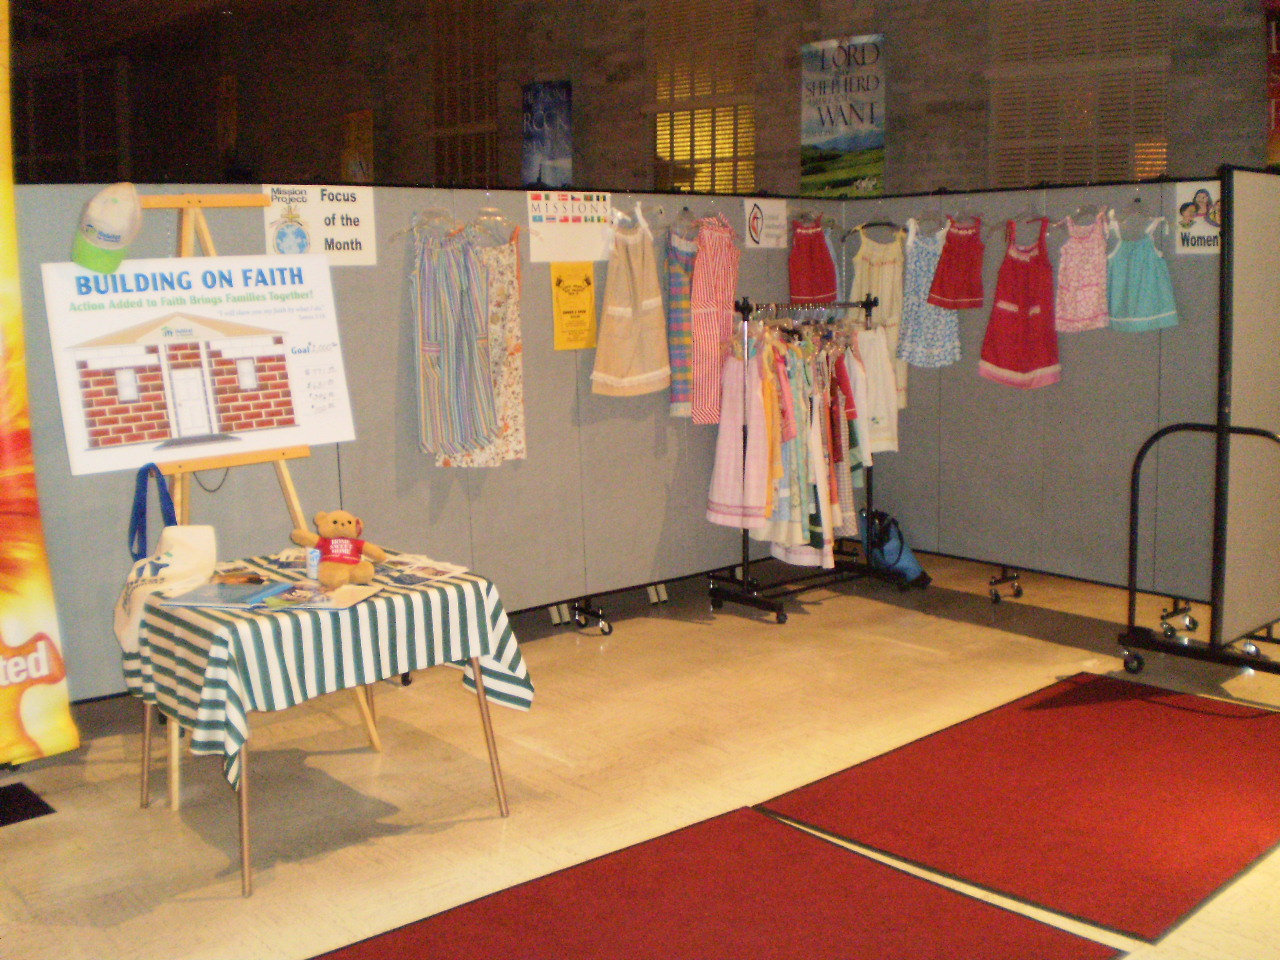 Female dresses are displayed on and around a Screenflex Room Divider in the back of a church entrance